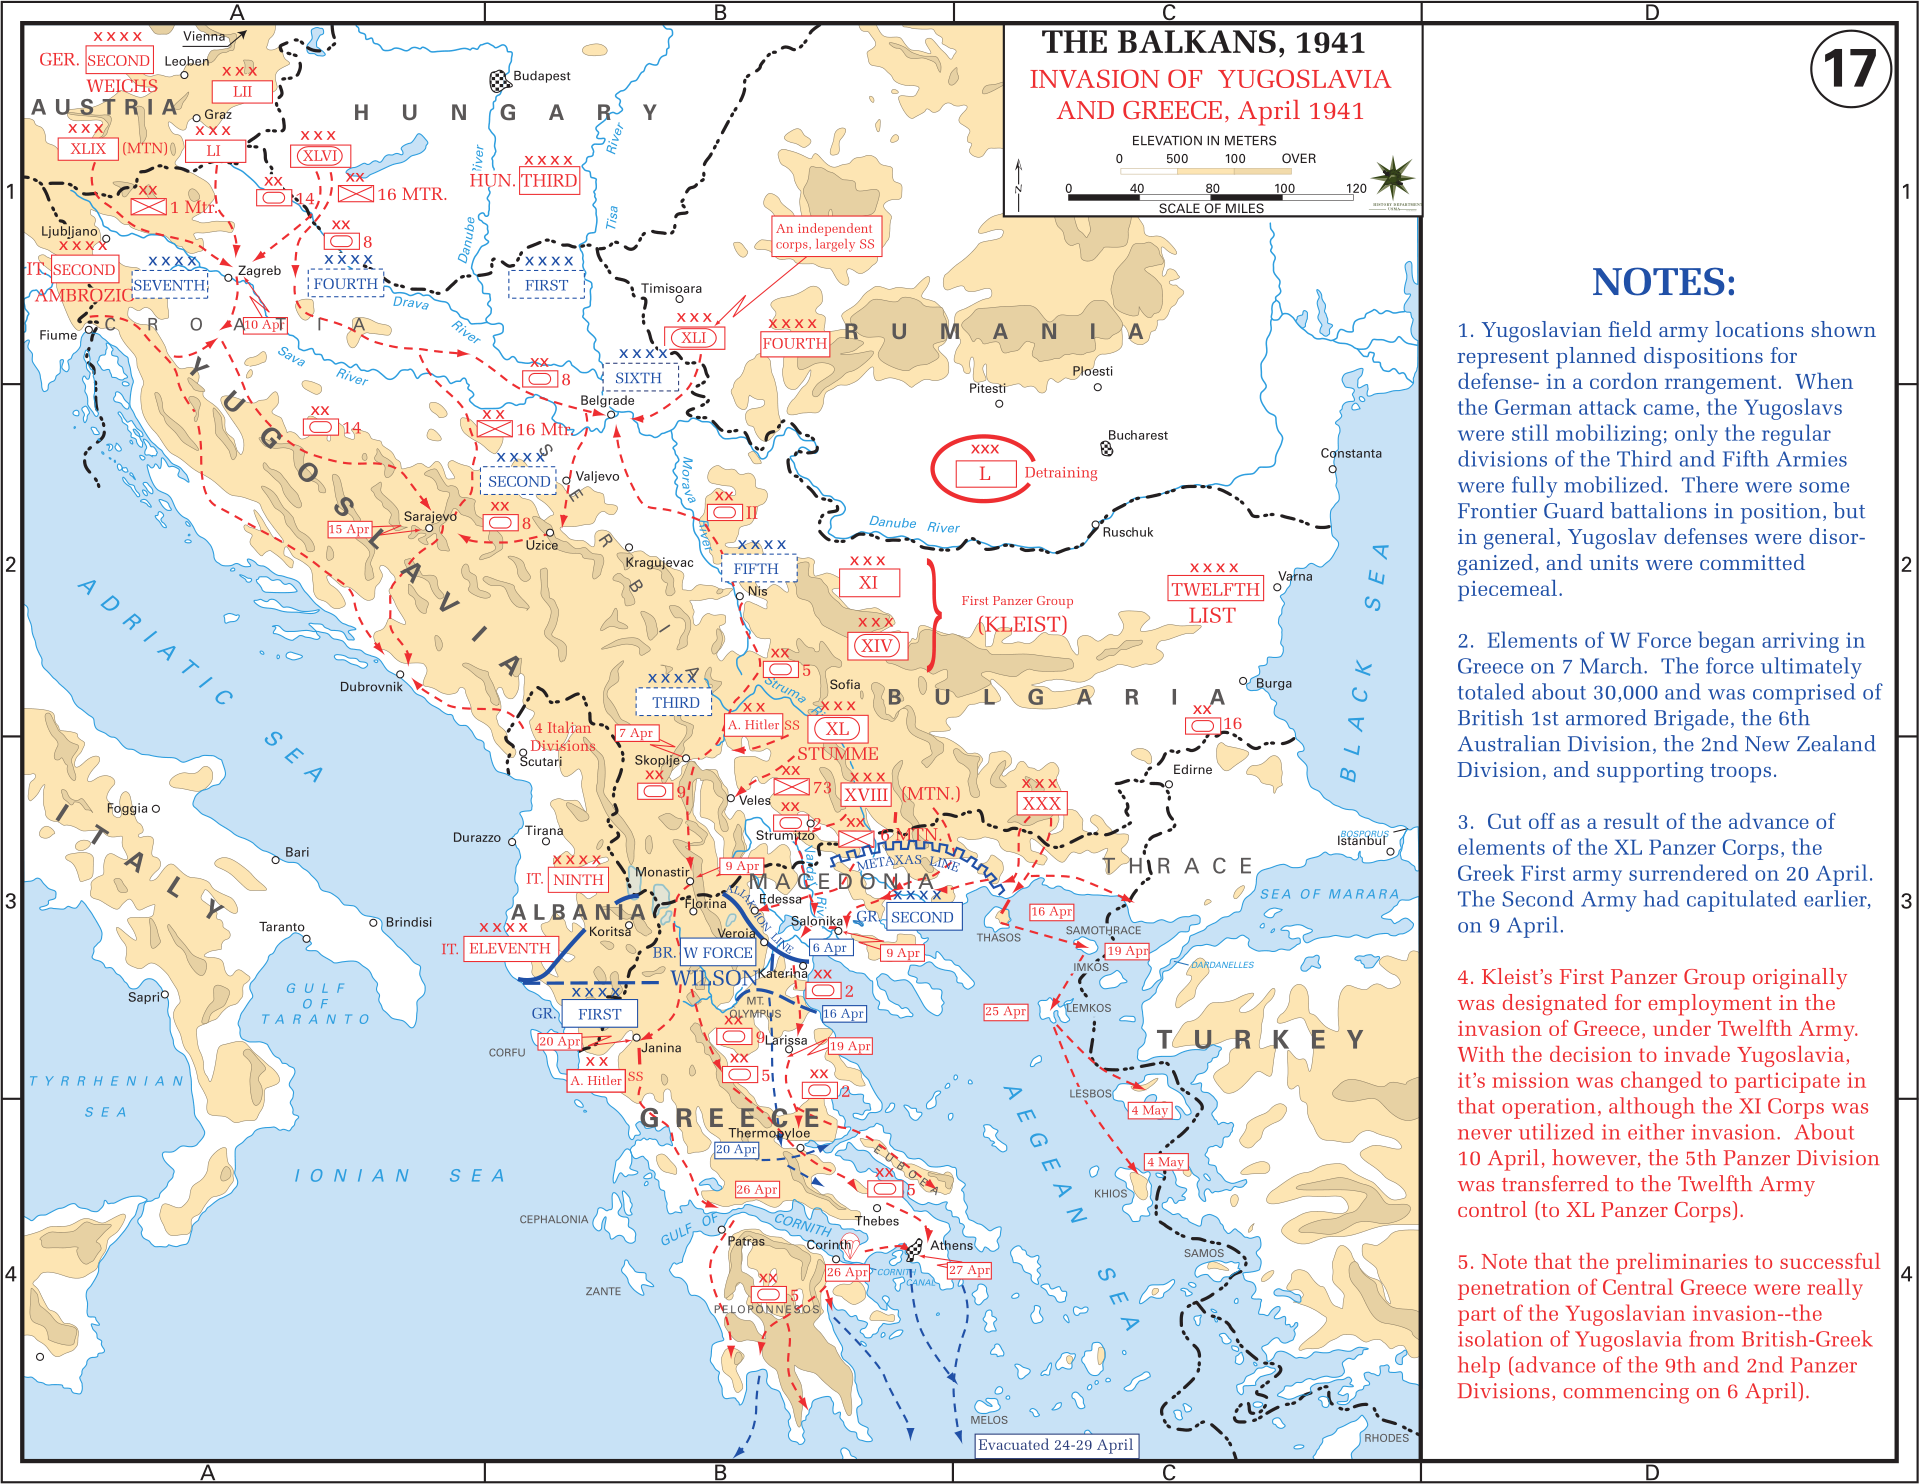 Southern front maps of world war ii inflab medium campaign in the balkans invasion of yugoslavia and greece april 1941 gumiabroncs Gallery